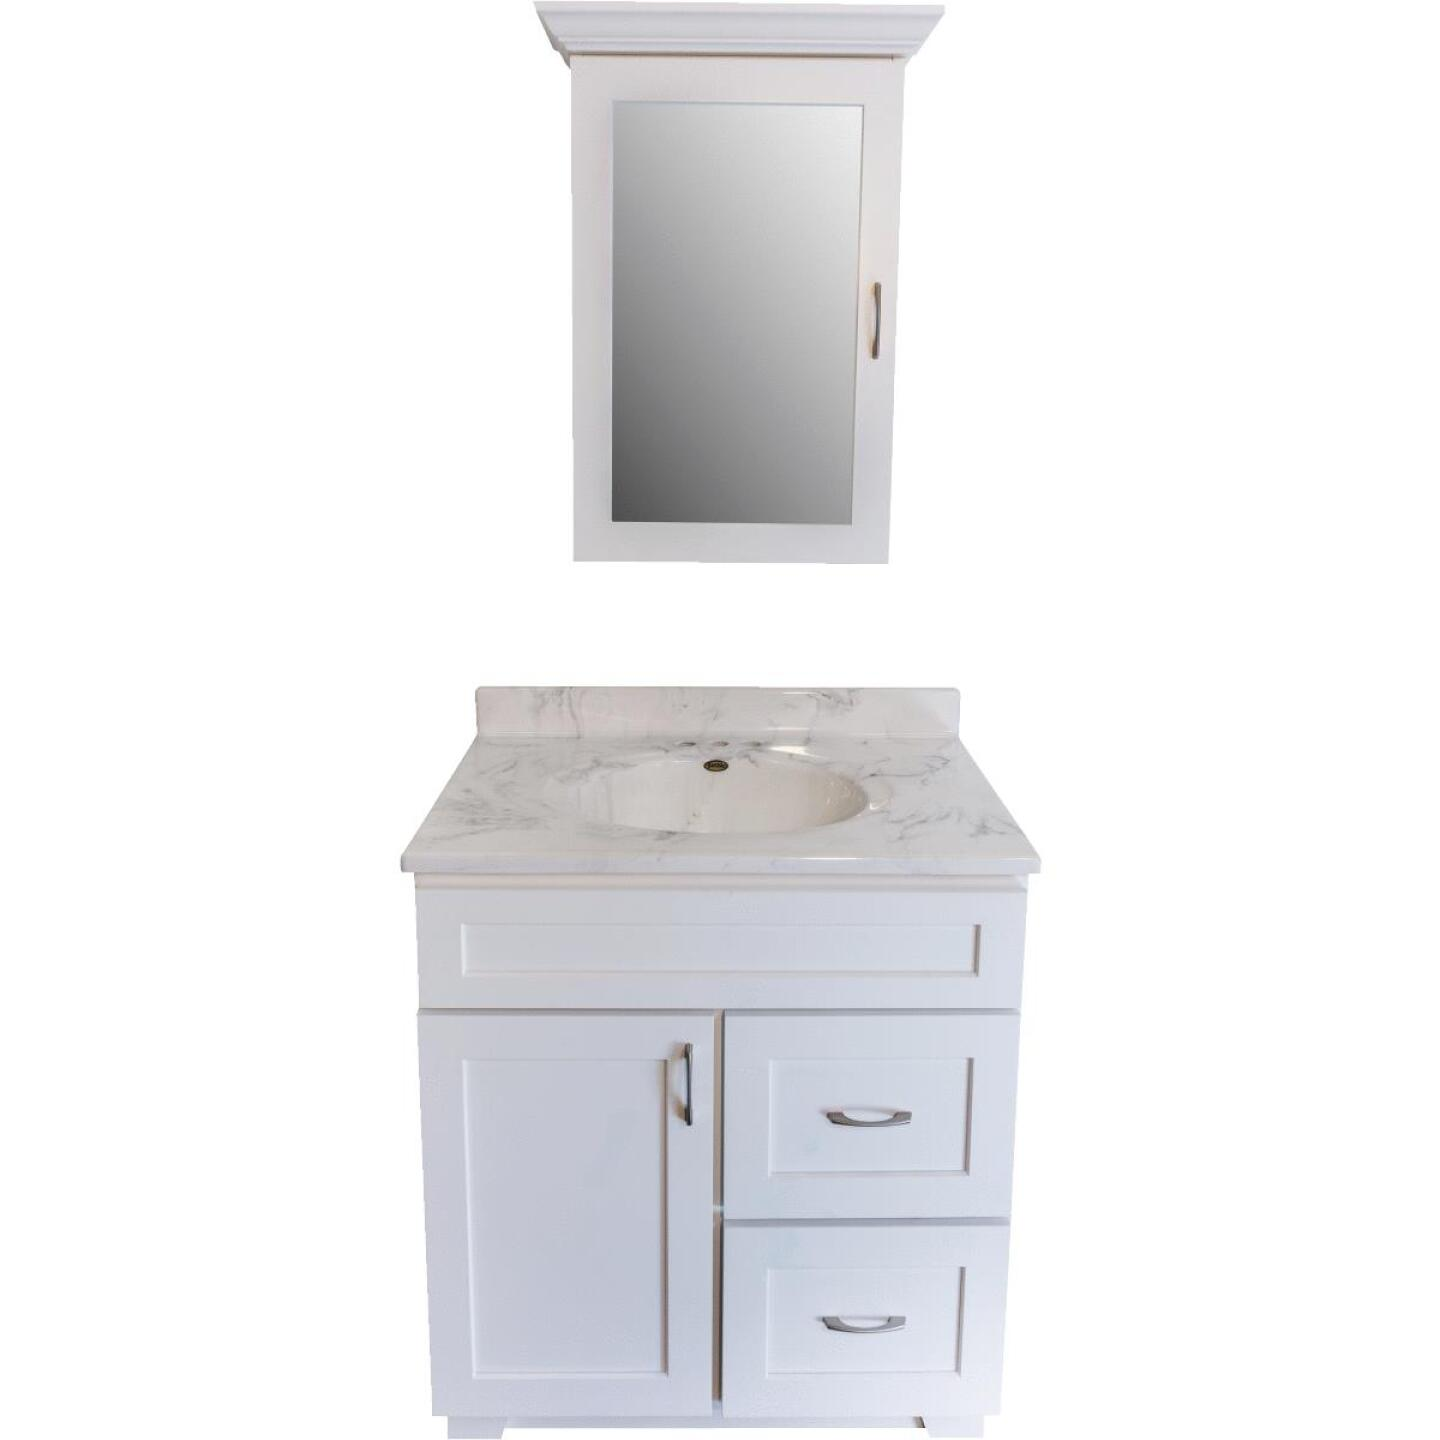 CraftMark Shaker Retreat White 30 In. W x 34 In. H x 21 In. D Vanity Base, 1 Door/2 Drawer Image 8